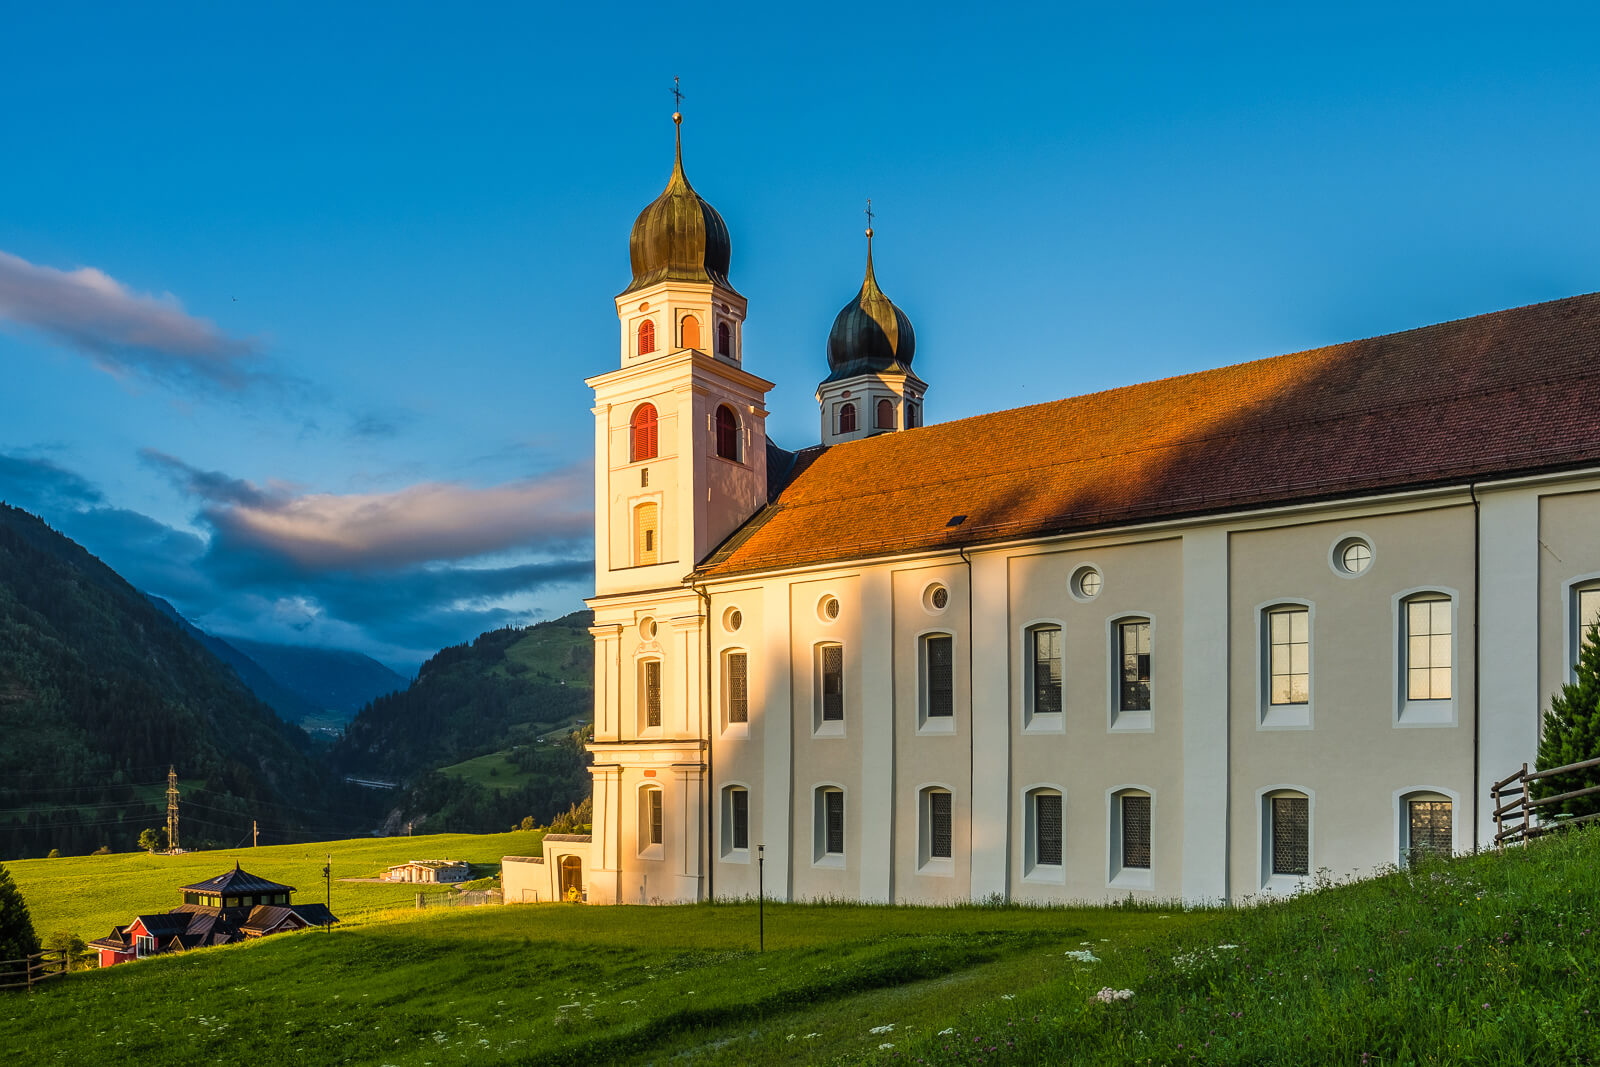 Architecture of the Disentis Monastery in Switzerland